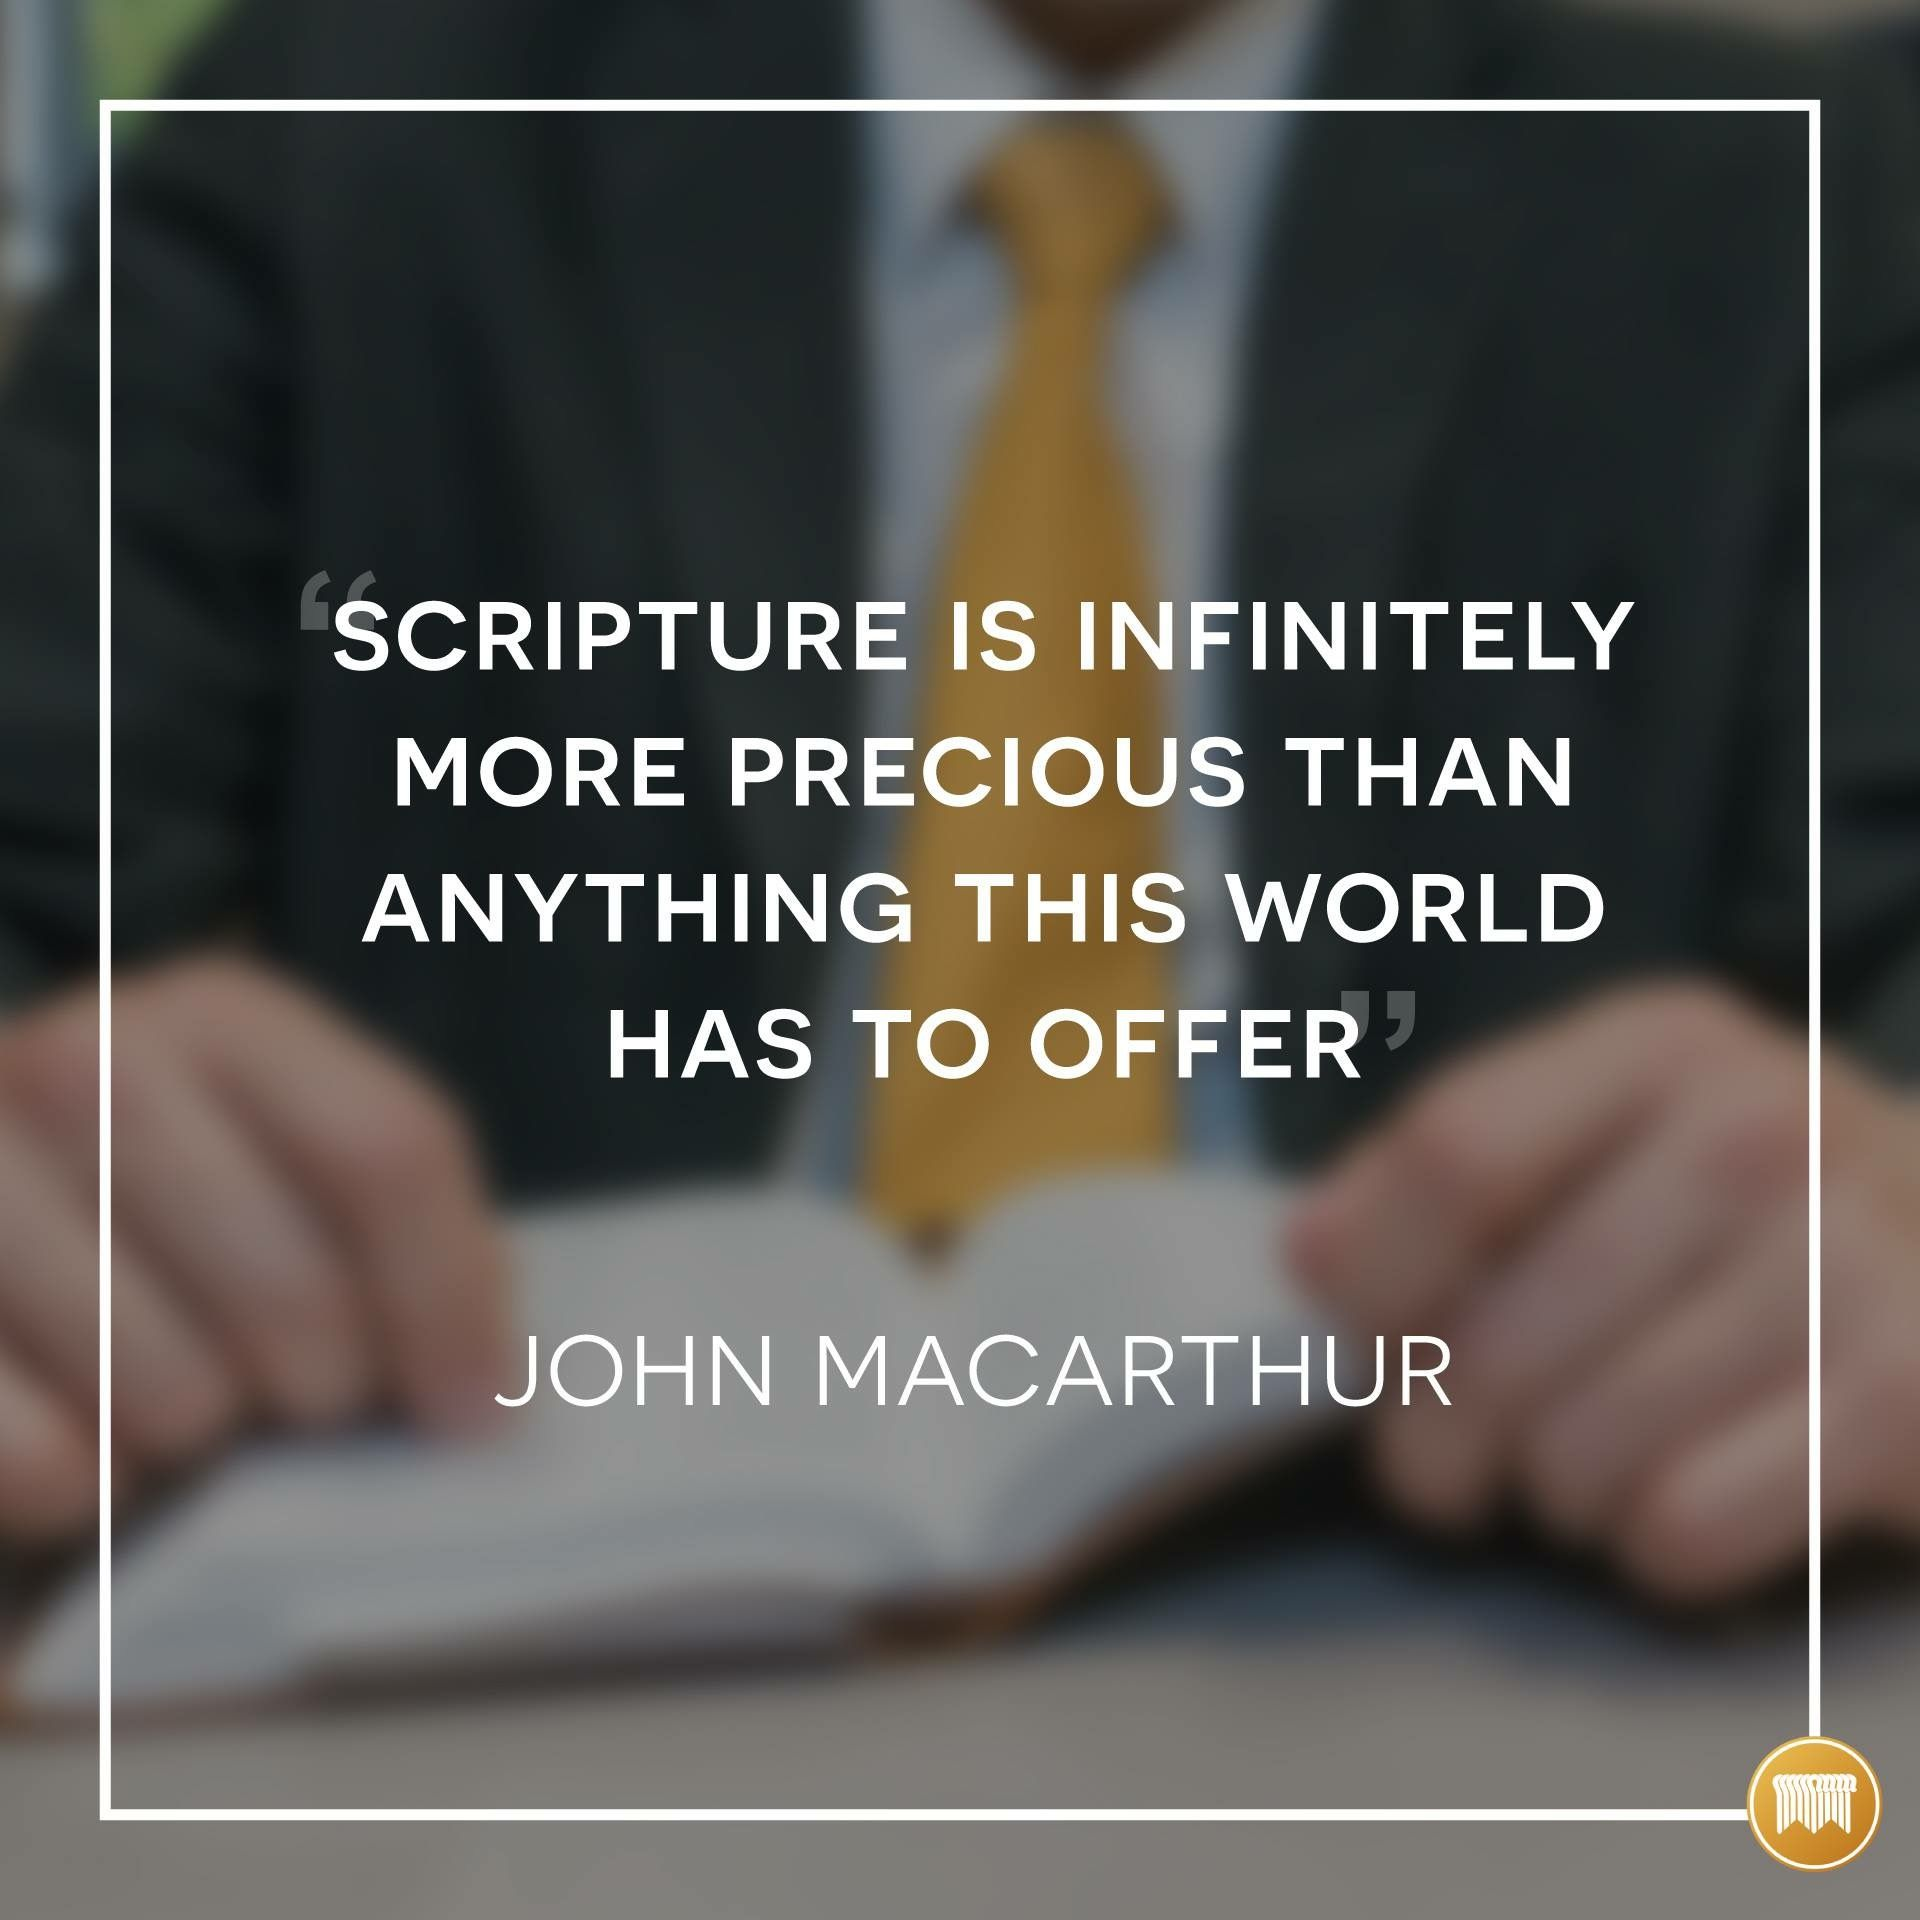 John Macarthur Quotes John Macarthur  John Macarthur Quotes And Pinterest  John